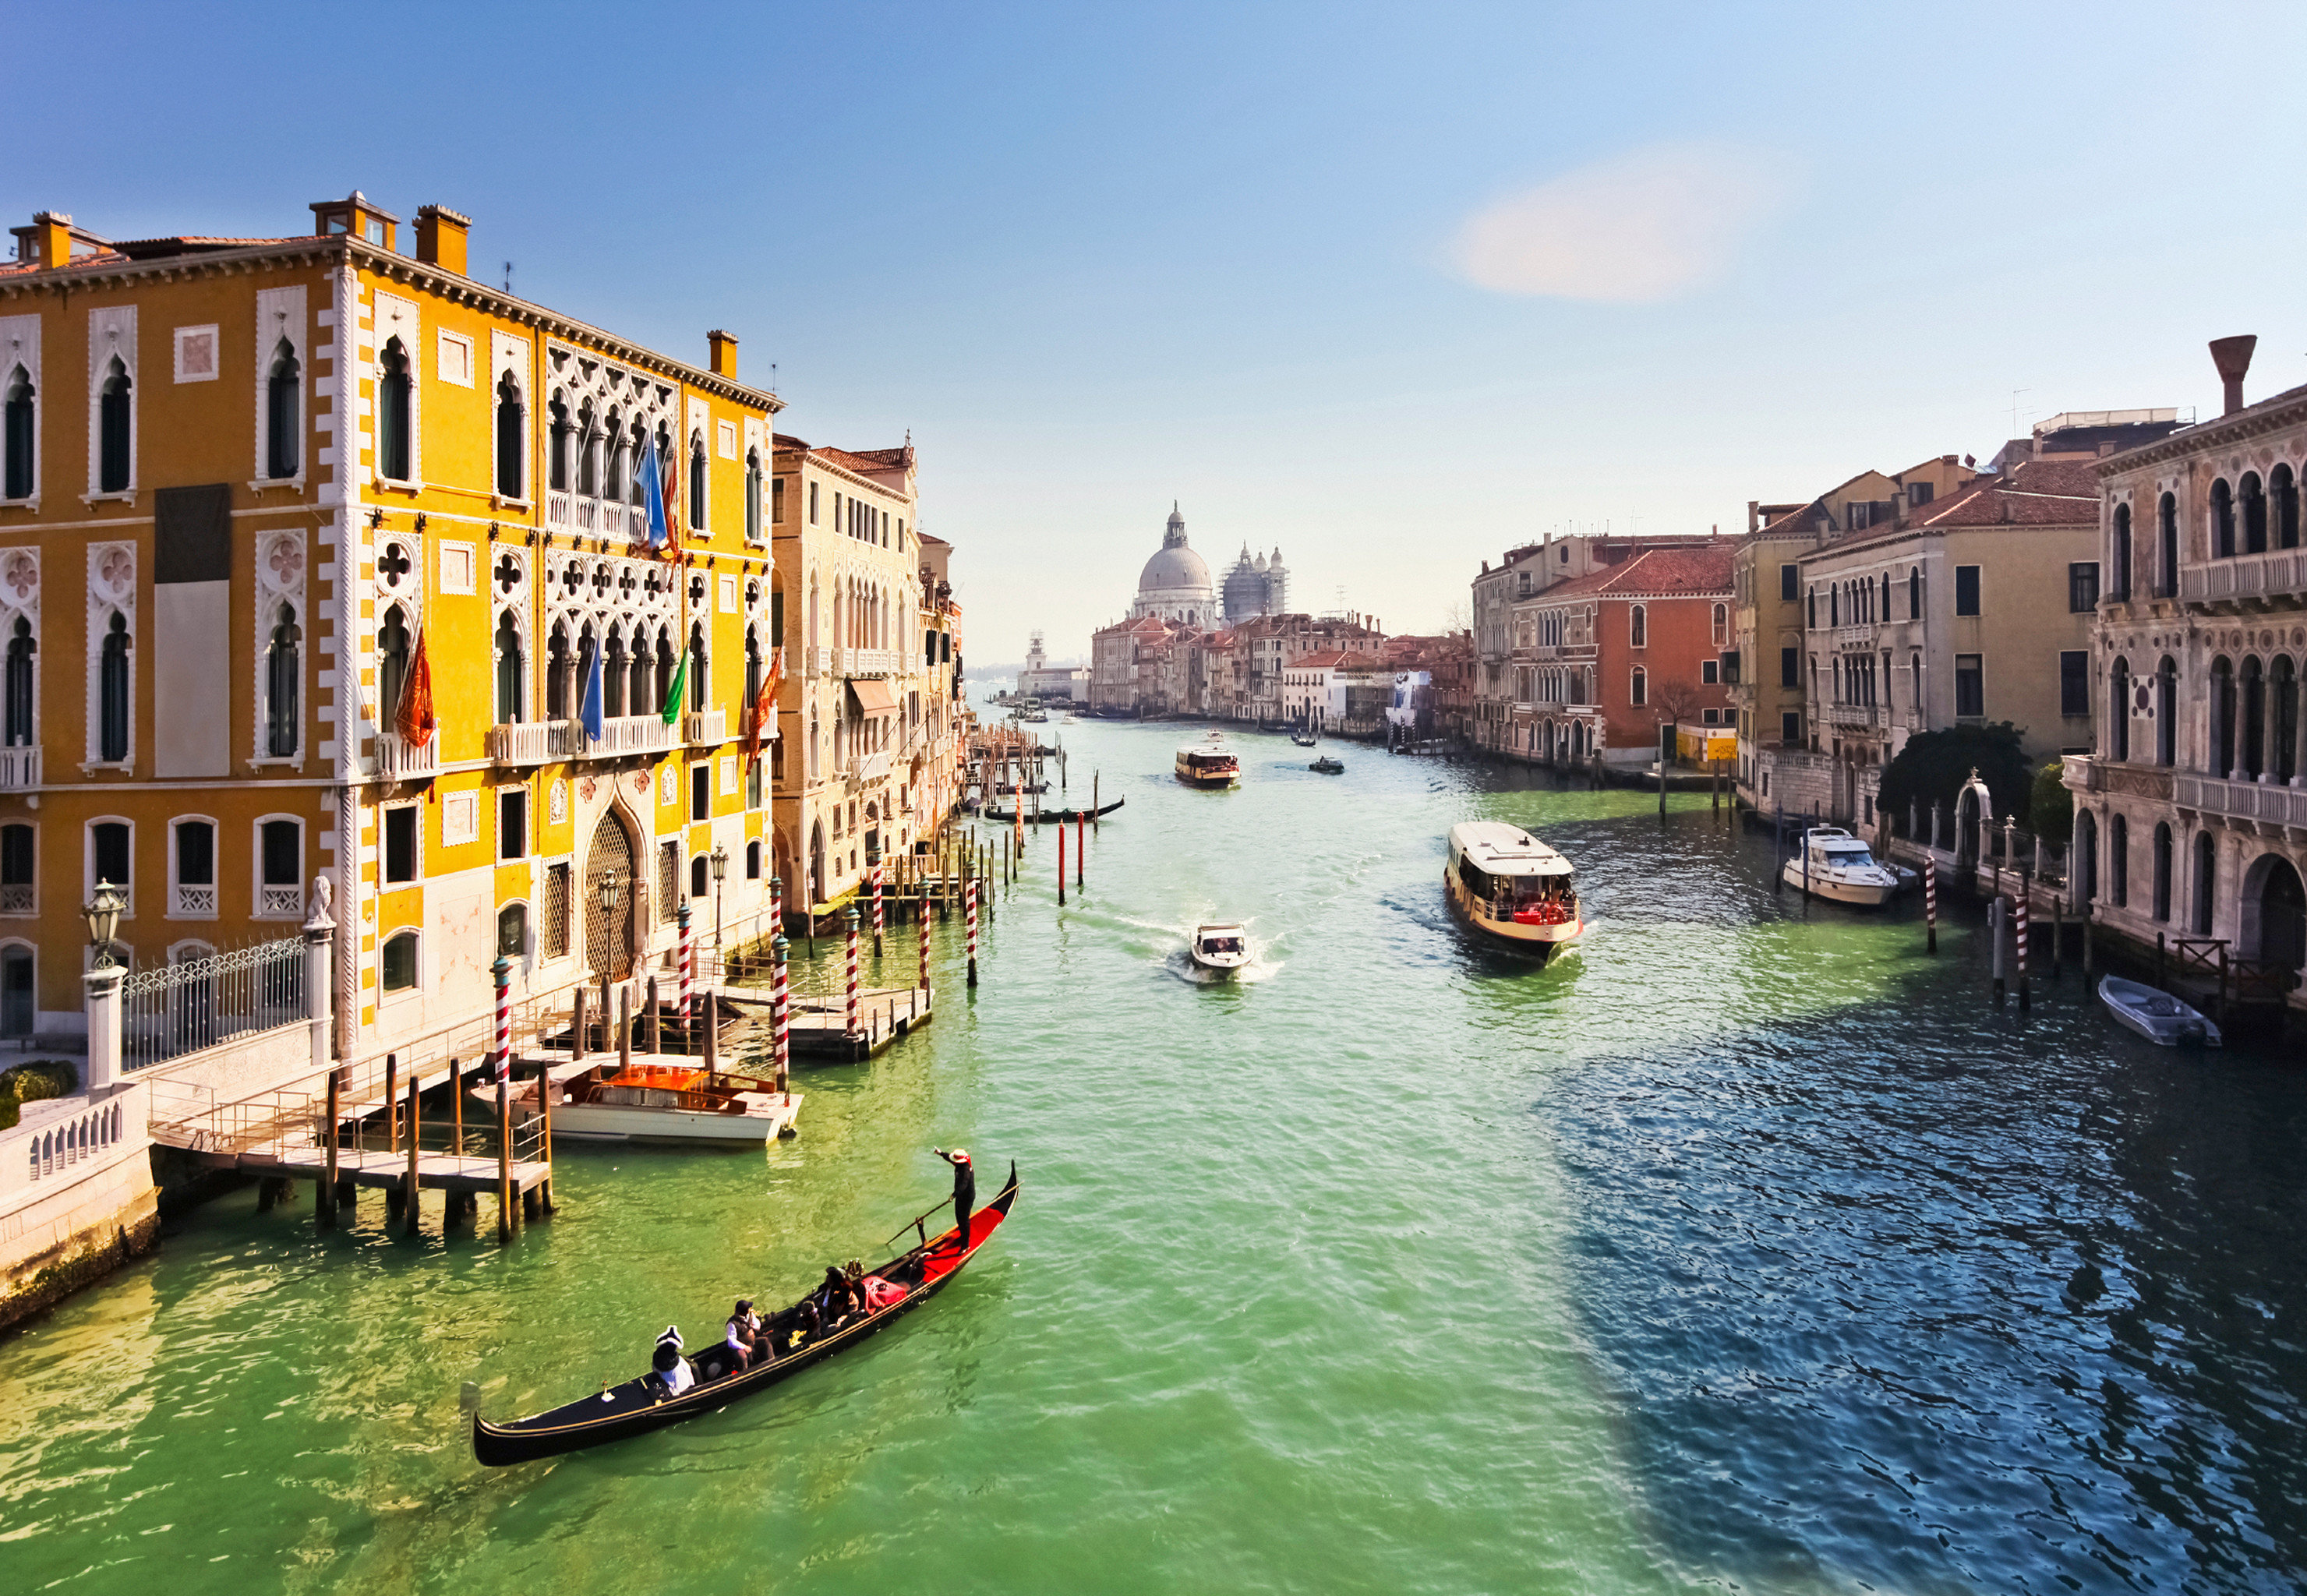 sky water Boat Canal vehicle scene River waterway Town gondola channel Harbor watercraft Sea boating cityscape traveling